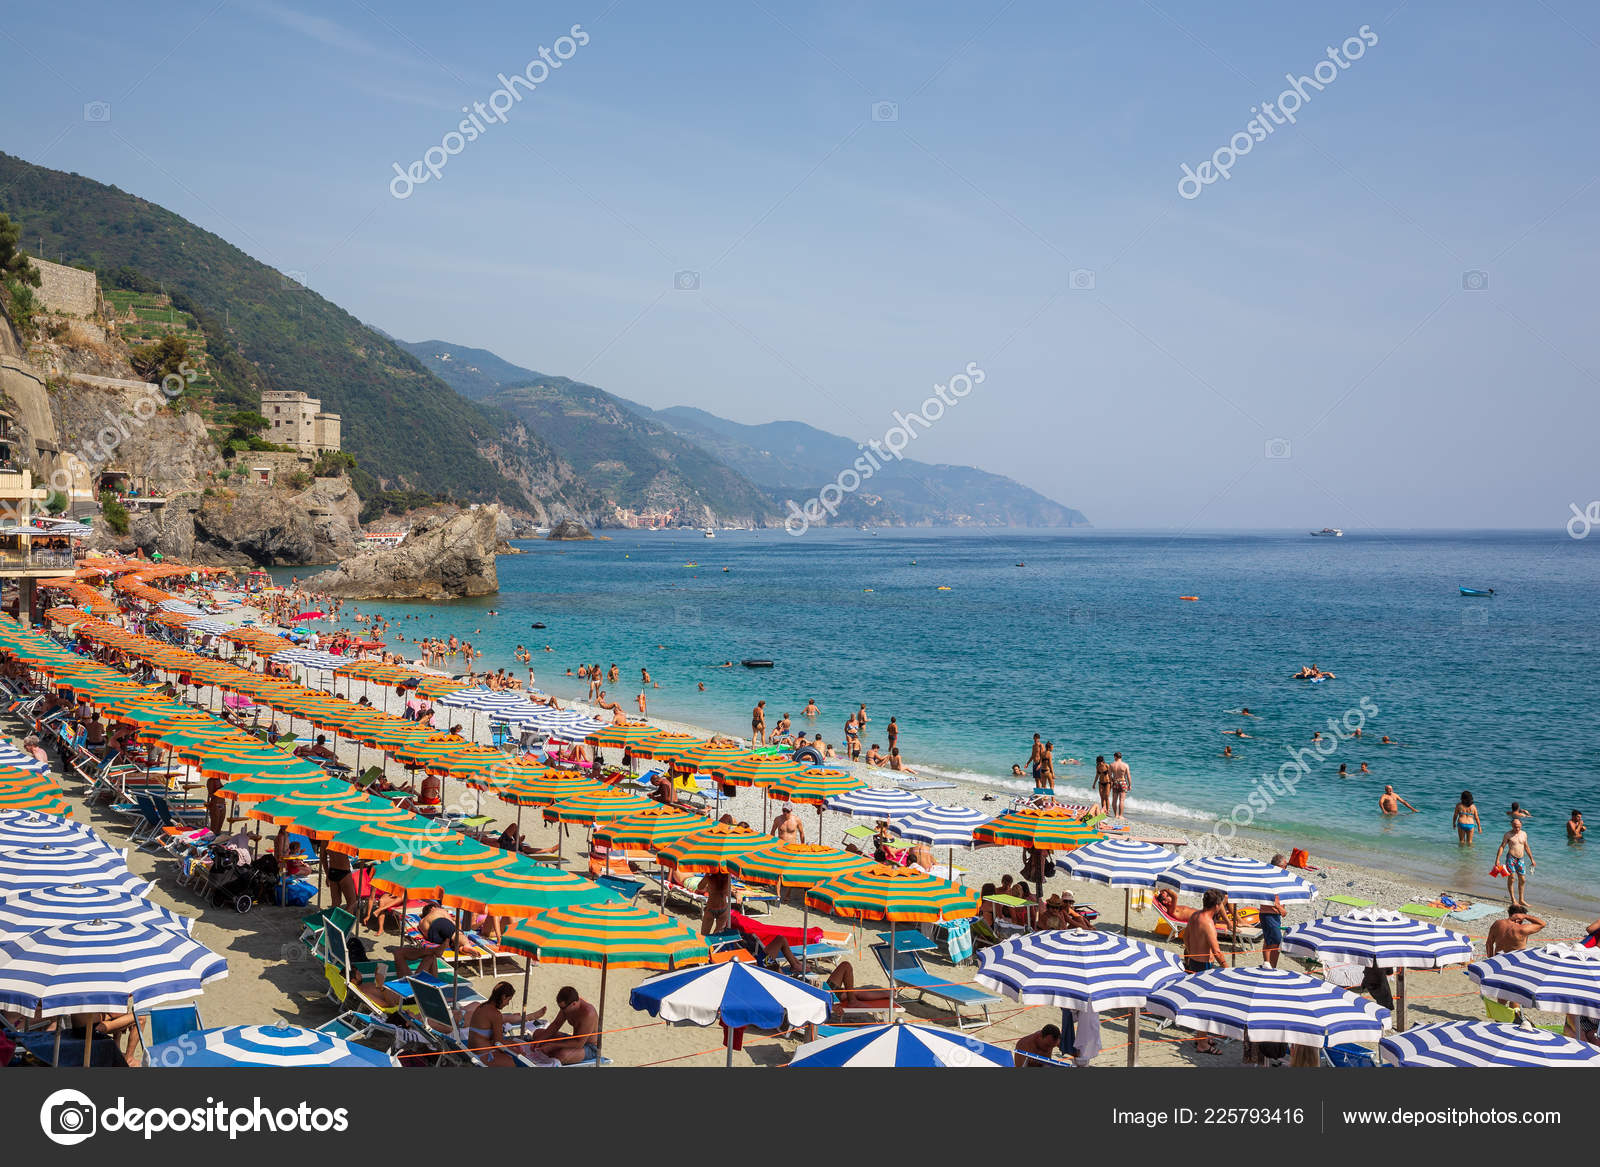 monterosso mare italy july 5th 2015 people swimming sunbathing beach